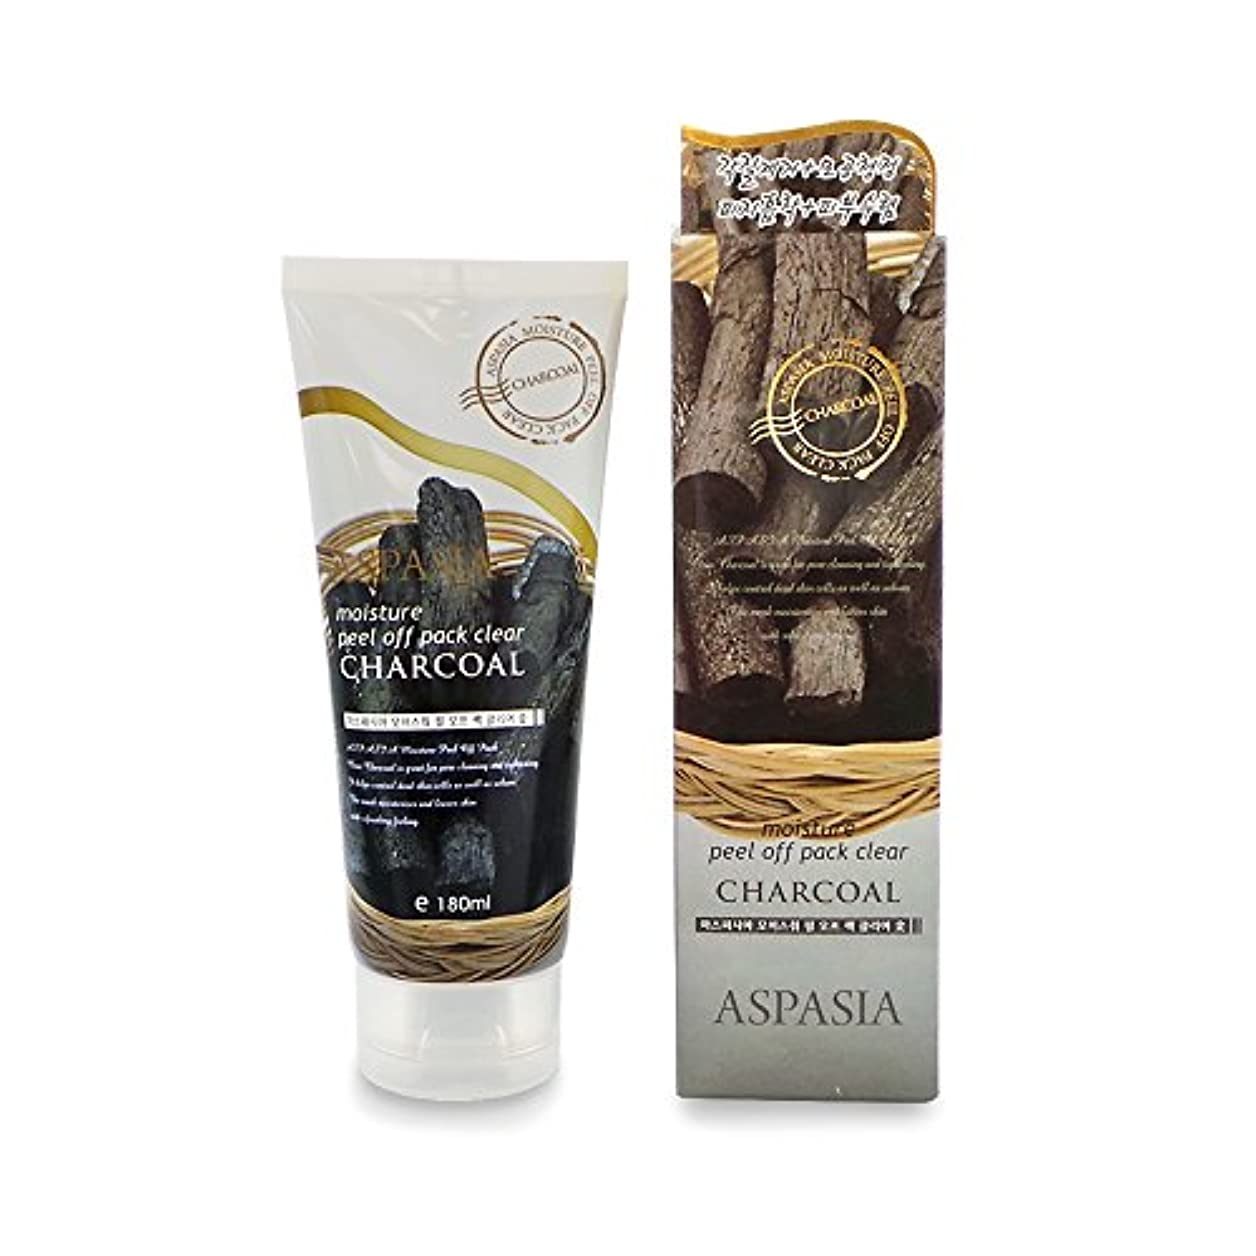 (3 Pack) ASPASIA Peel Off Pack - Charcoal (並行輸入品)